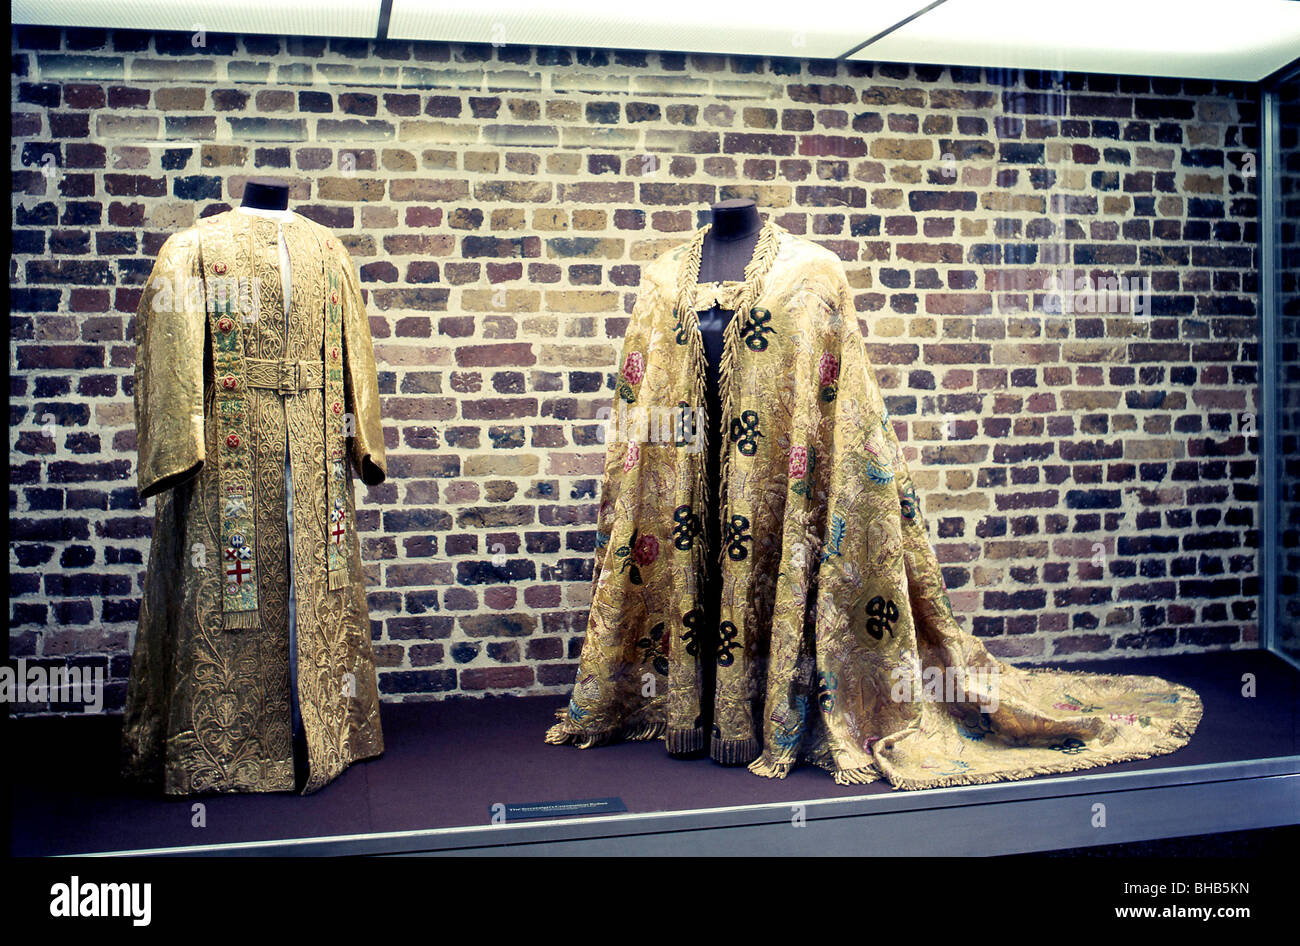 Tower of London,Crown Jewels,The Coronation Robes. - Stock Image